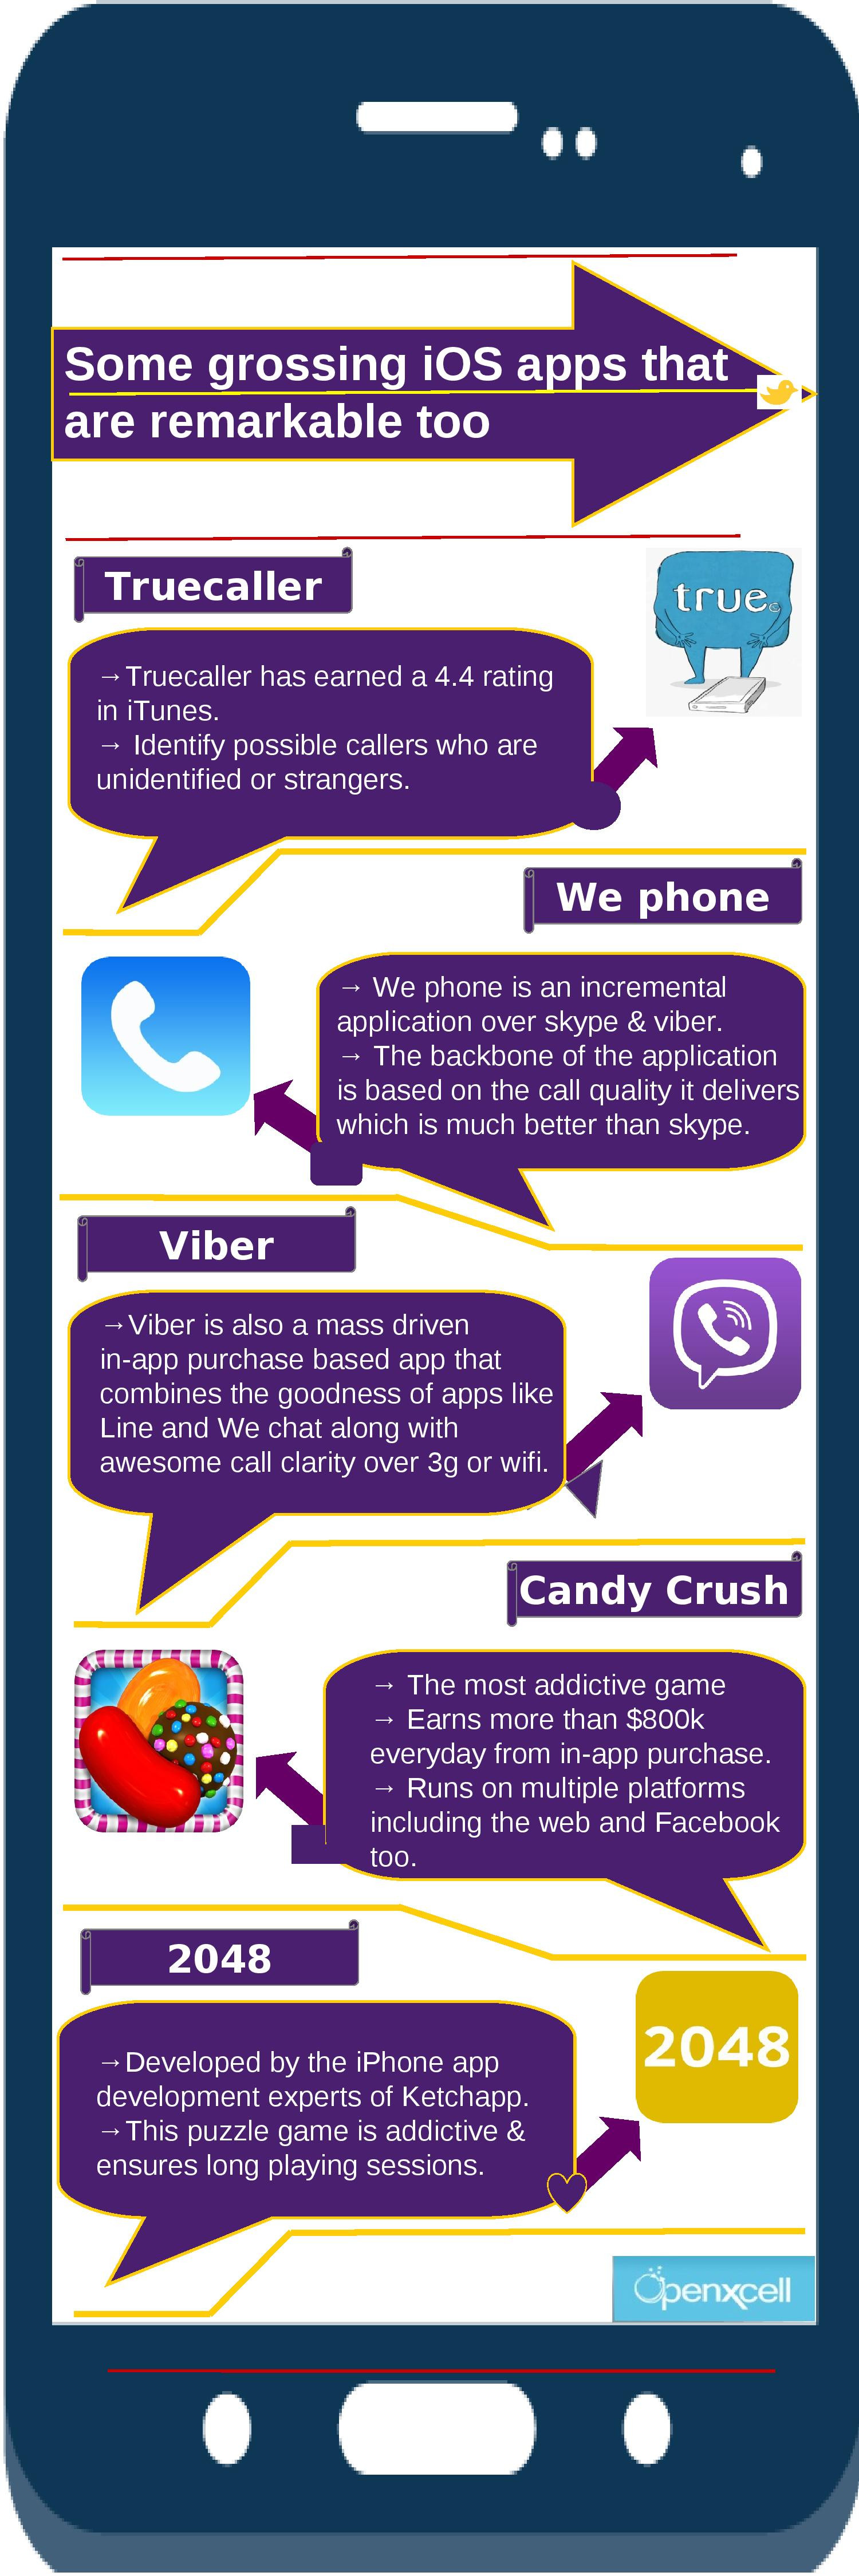 Some grossing iOS apps that are remarkable too Infographic